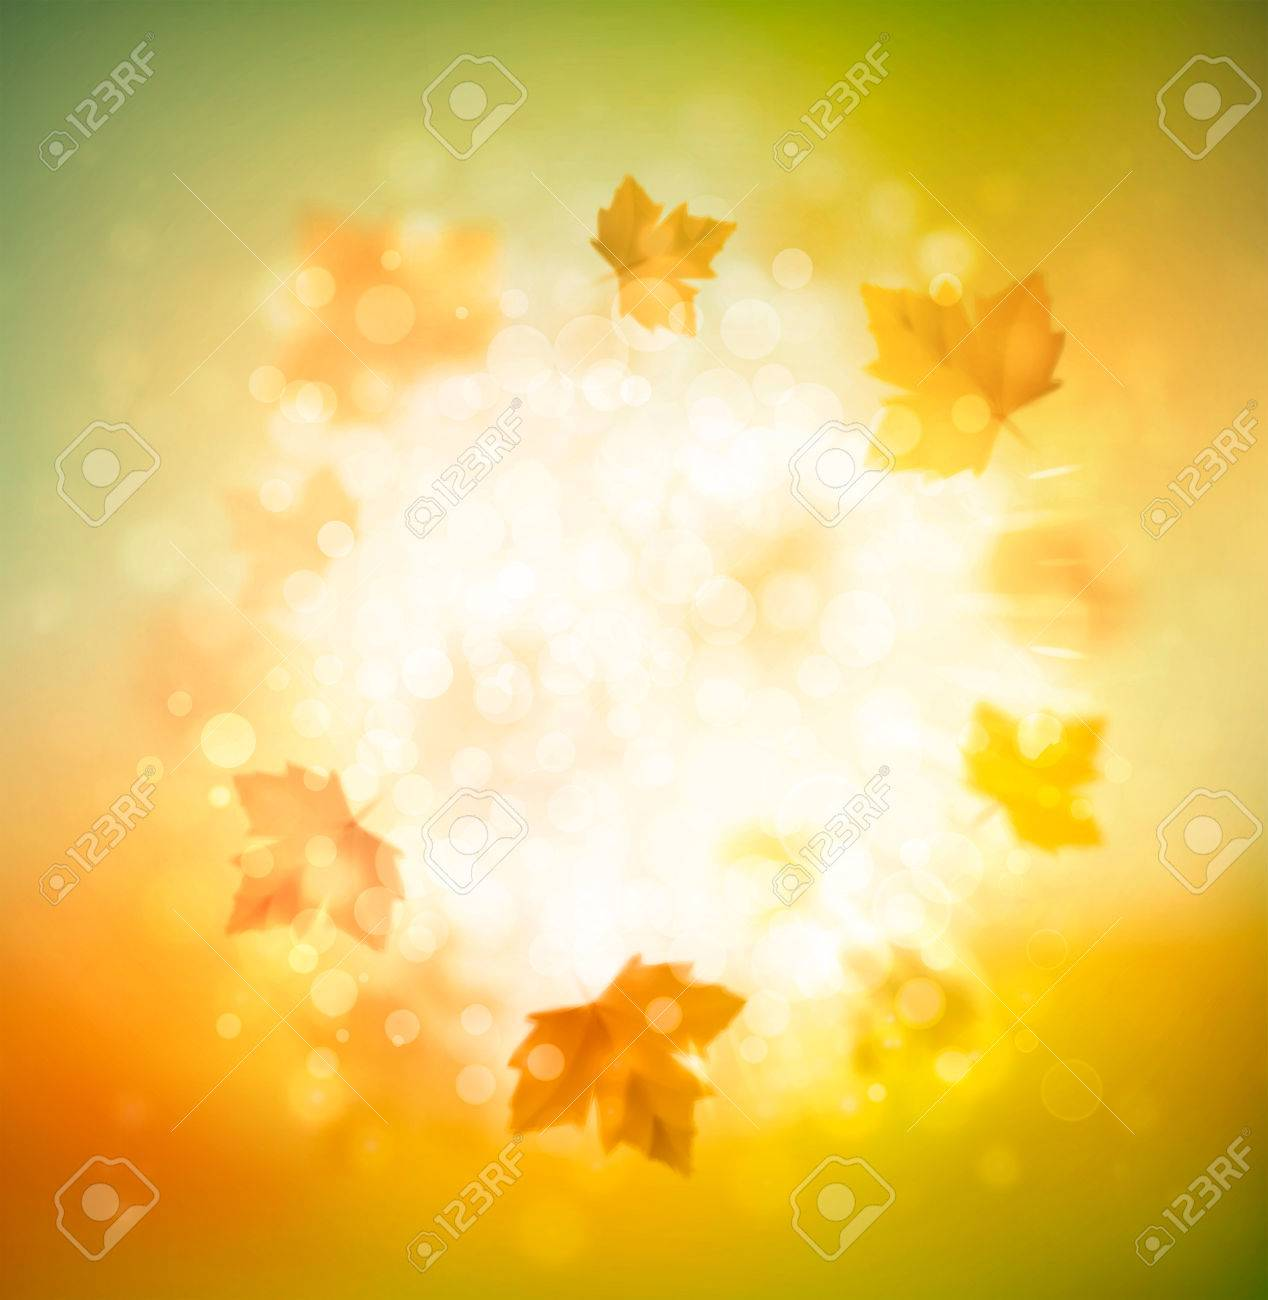 Autumn abstract background - 30546895